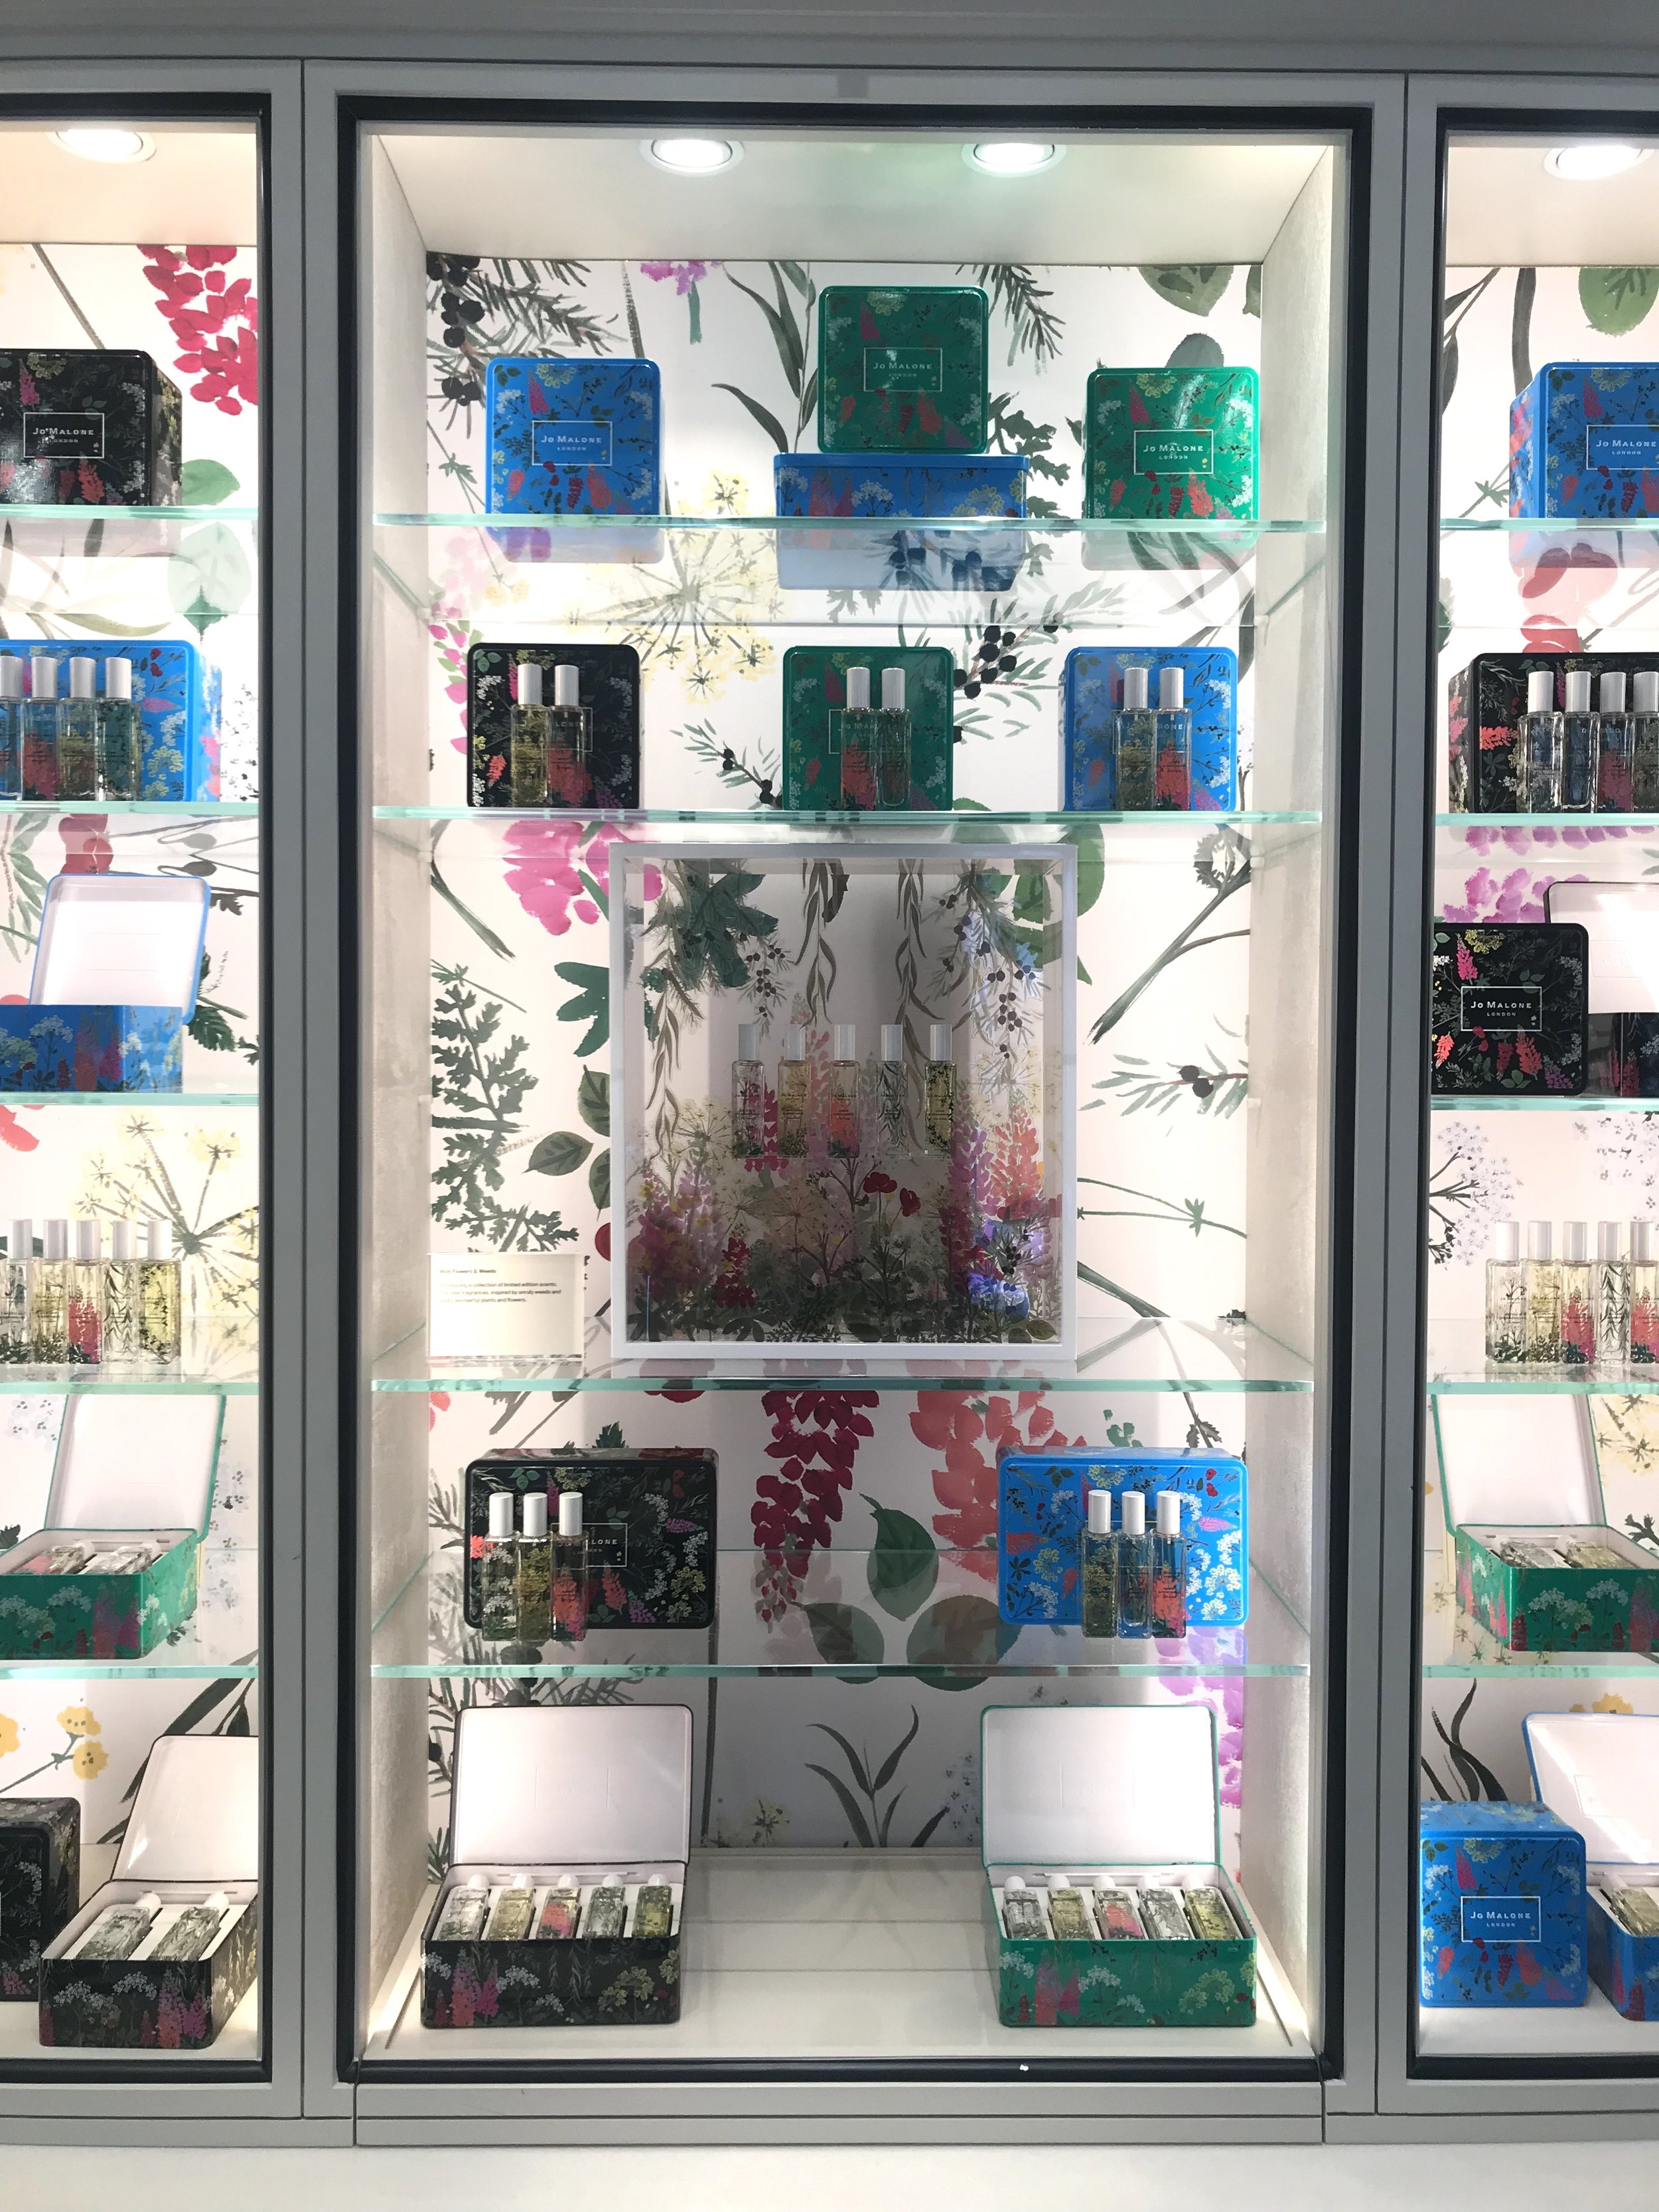 Jo Malone Wild Flowers & Weeds collection